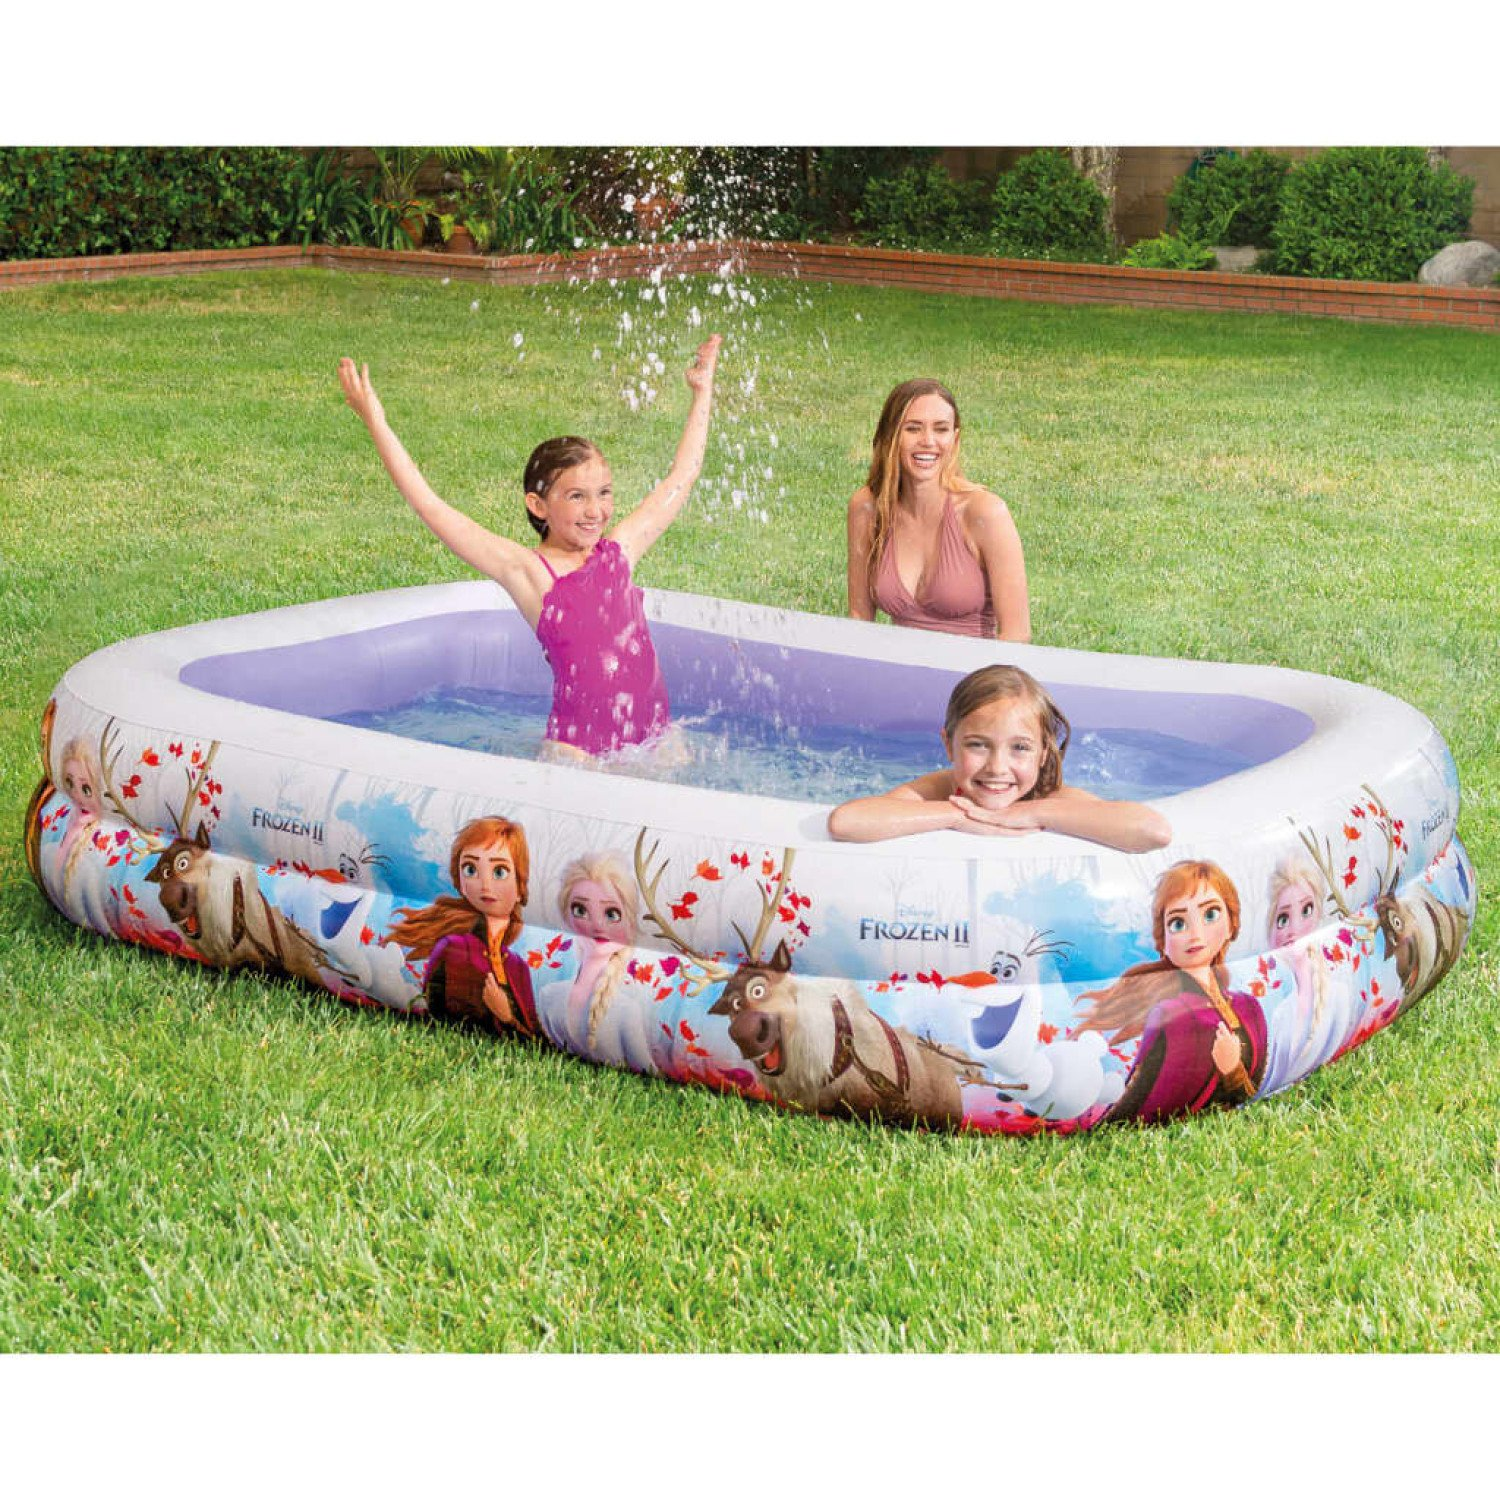 Frozen Swim Center Pool Multicolour 262x175x56 cm